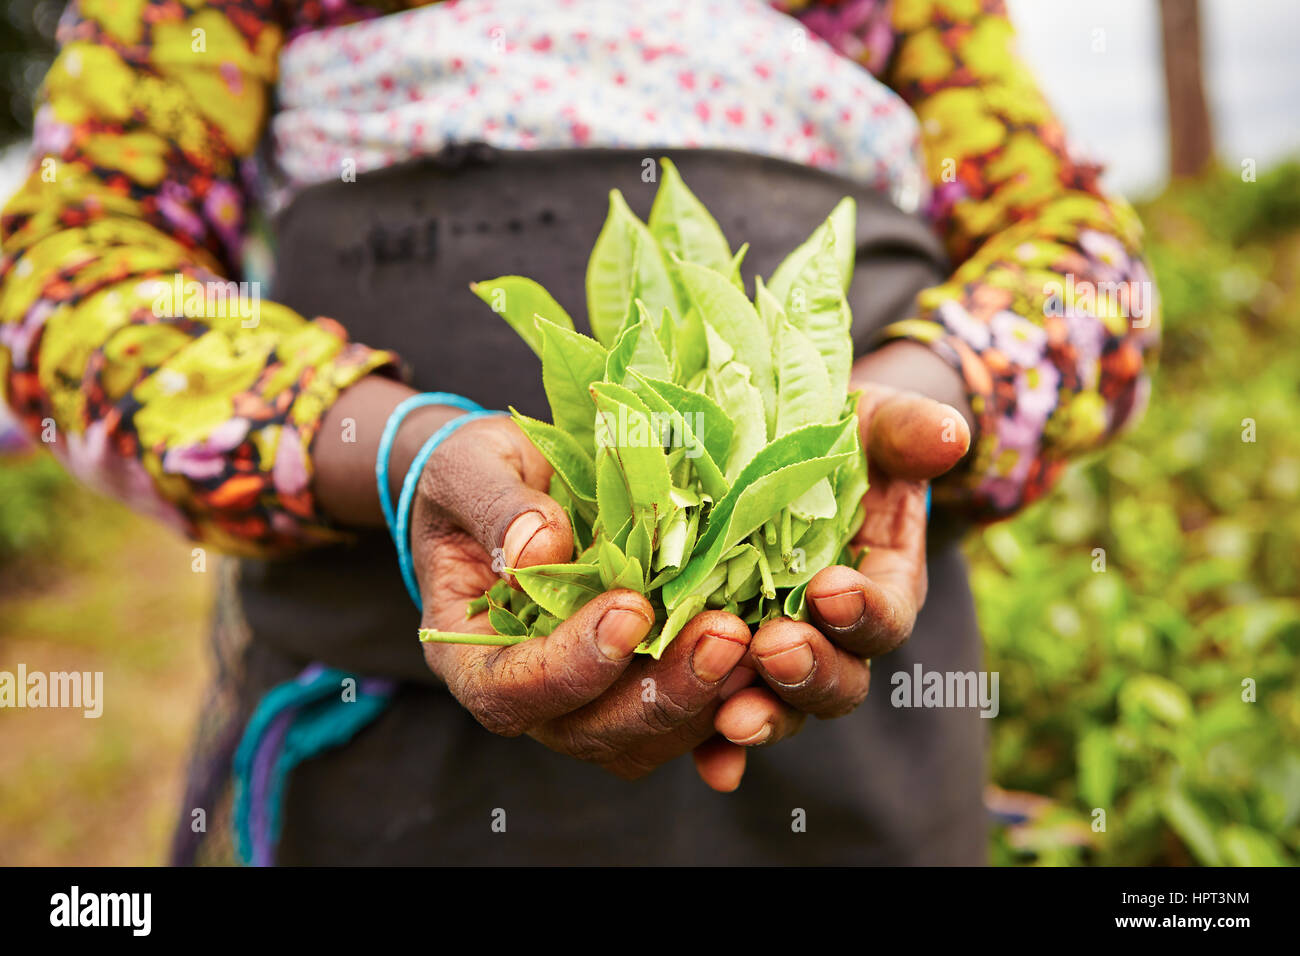 Hands of women from the tea plantation - Sri Lanka - Stock Image